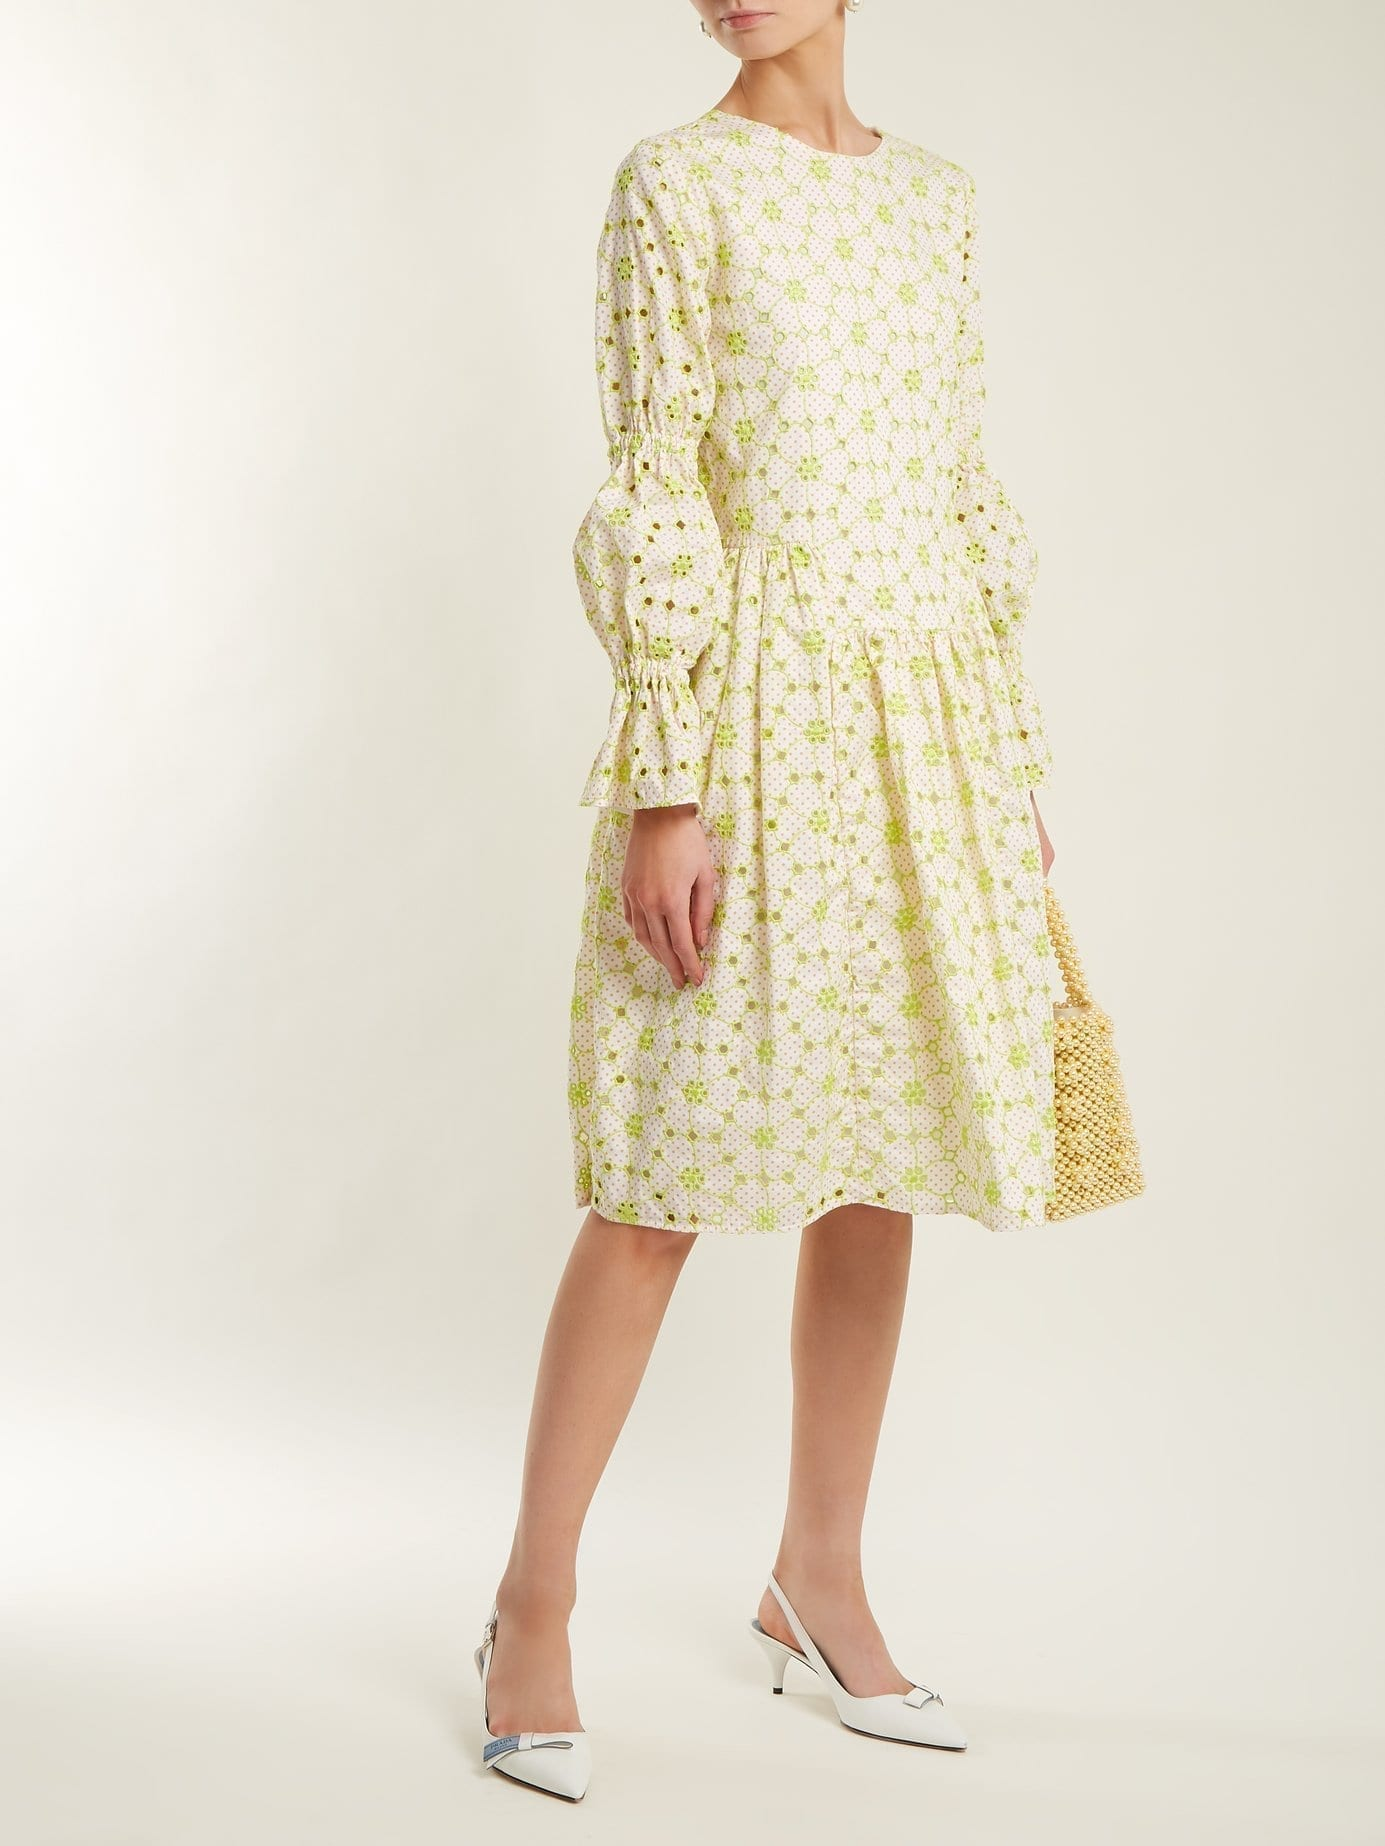 SHRIMPS Peggy Floral Embroidered Cotton Blend Lime Green Dress